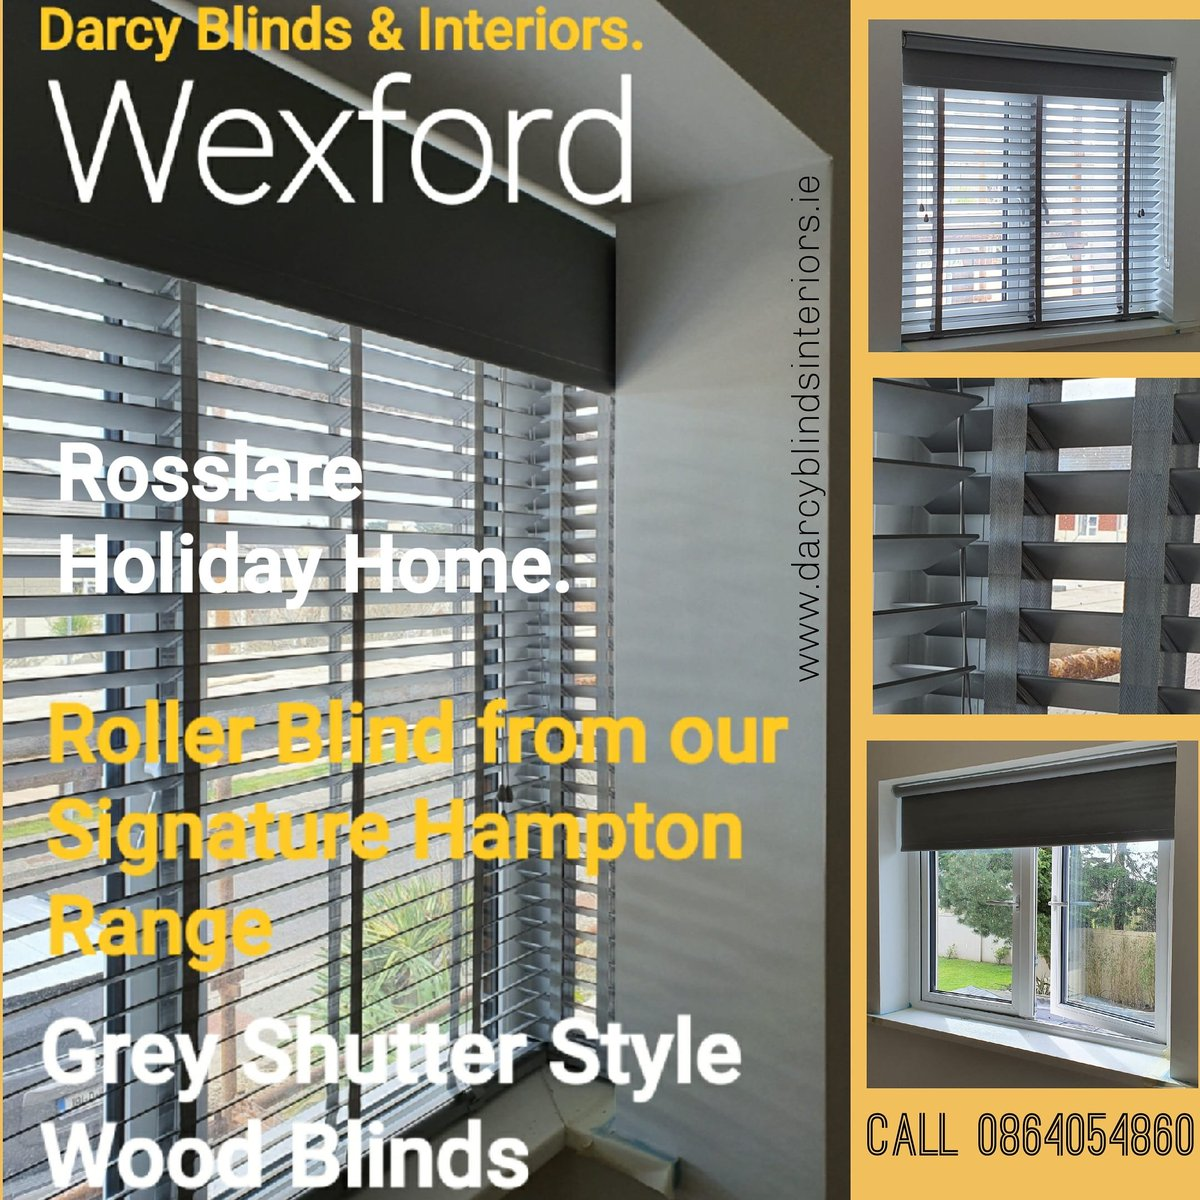 Darcy Blinds & Interiors,  Rosslare holiday home gets star treatment from Darcy Blinds,  All Areas of Wexford covered. Best prices  #greywoodblinds  #woodblinds #realwood #FamilyBusiness #romanblinds #StayAtHomeSaveLives. #asktheexpertpic.twitter.com/E6AbKlNUzB